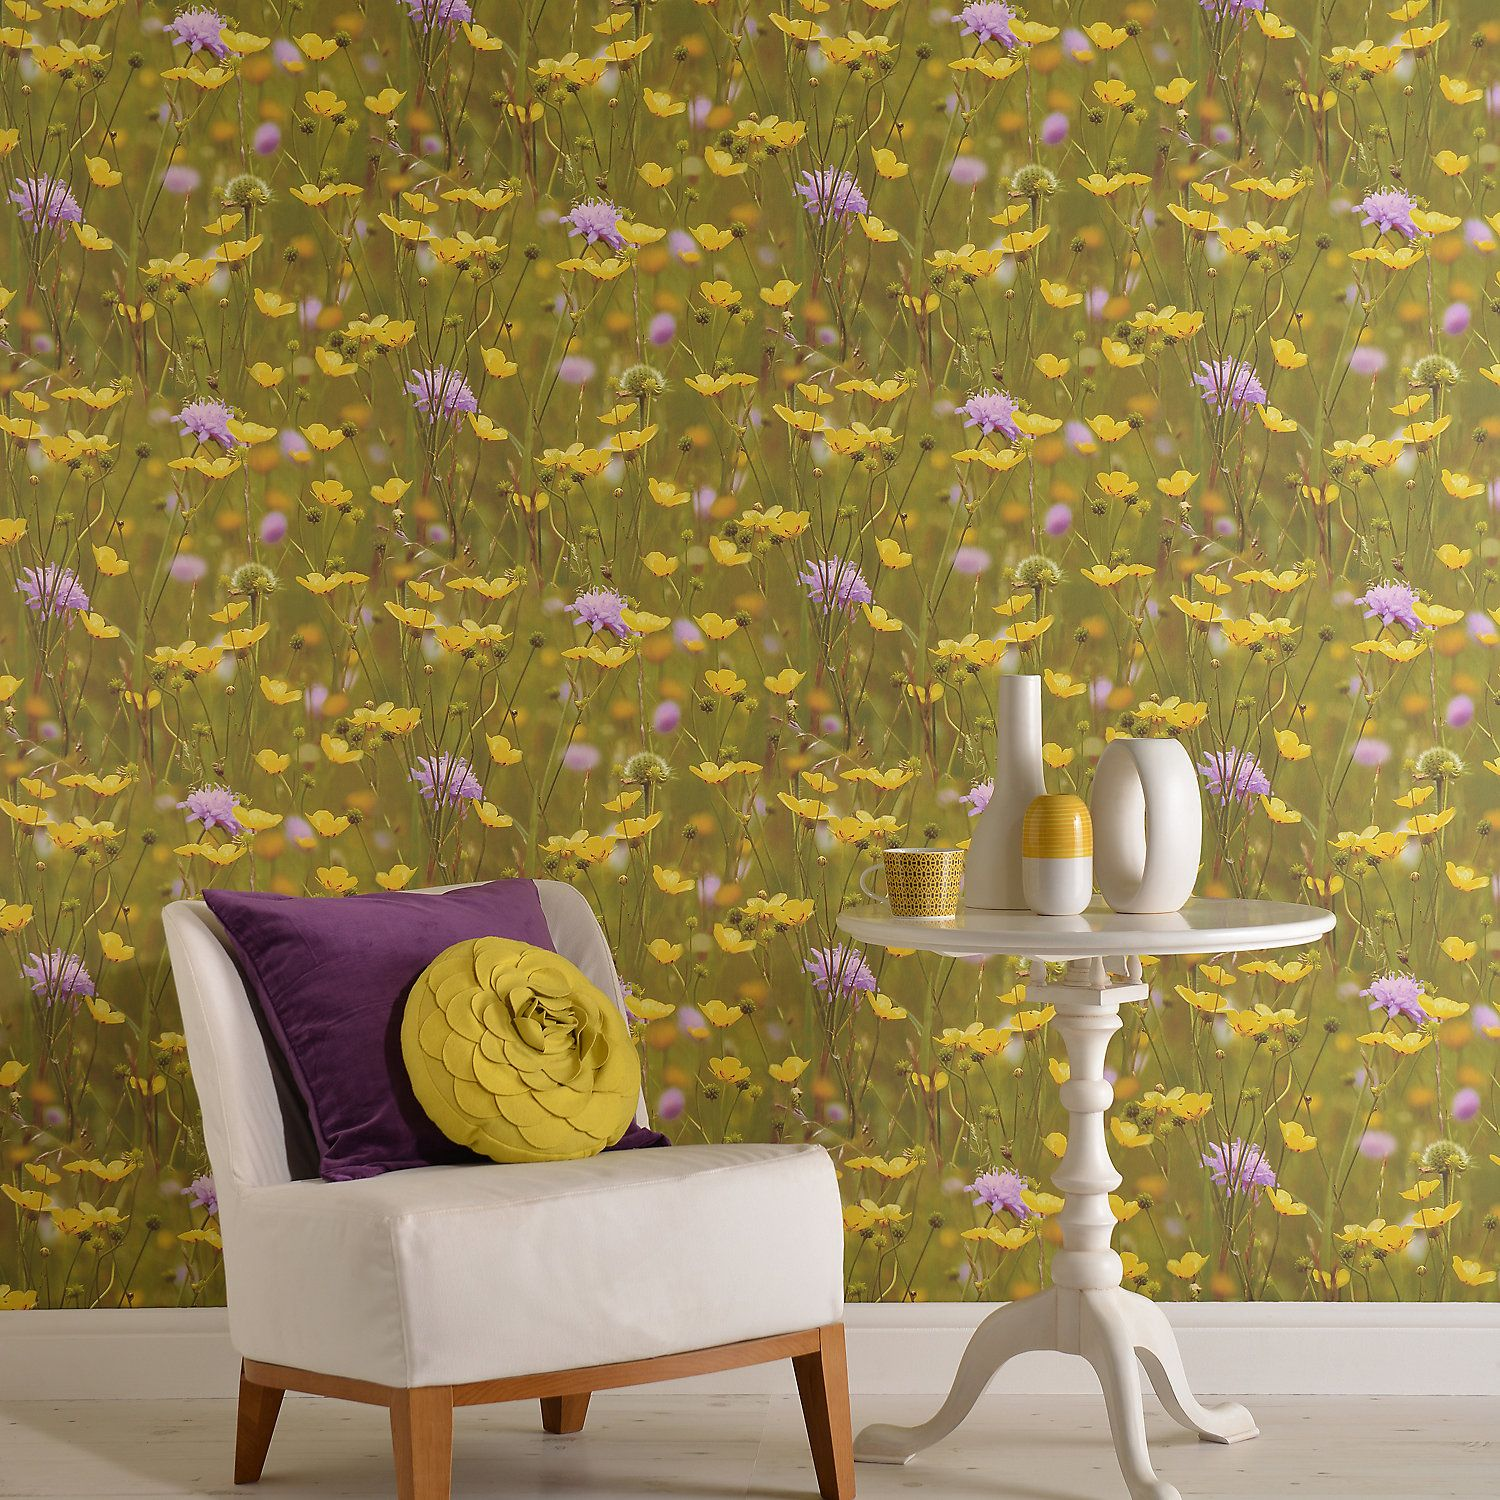 Statement Meadow Green & yellow Floral Wallpaper in 2019